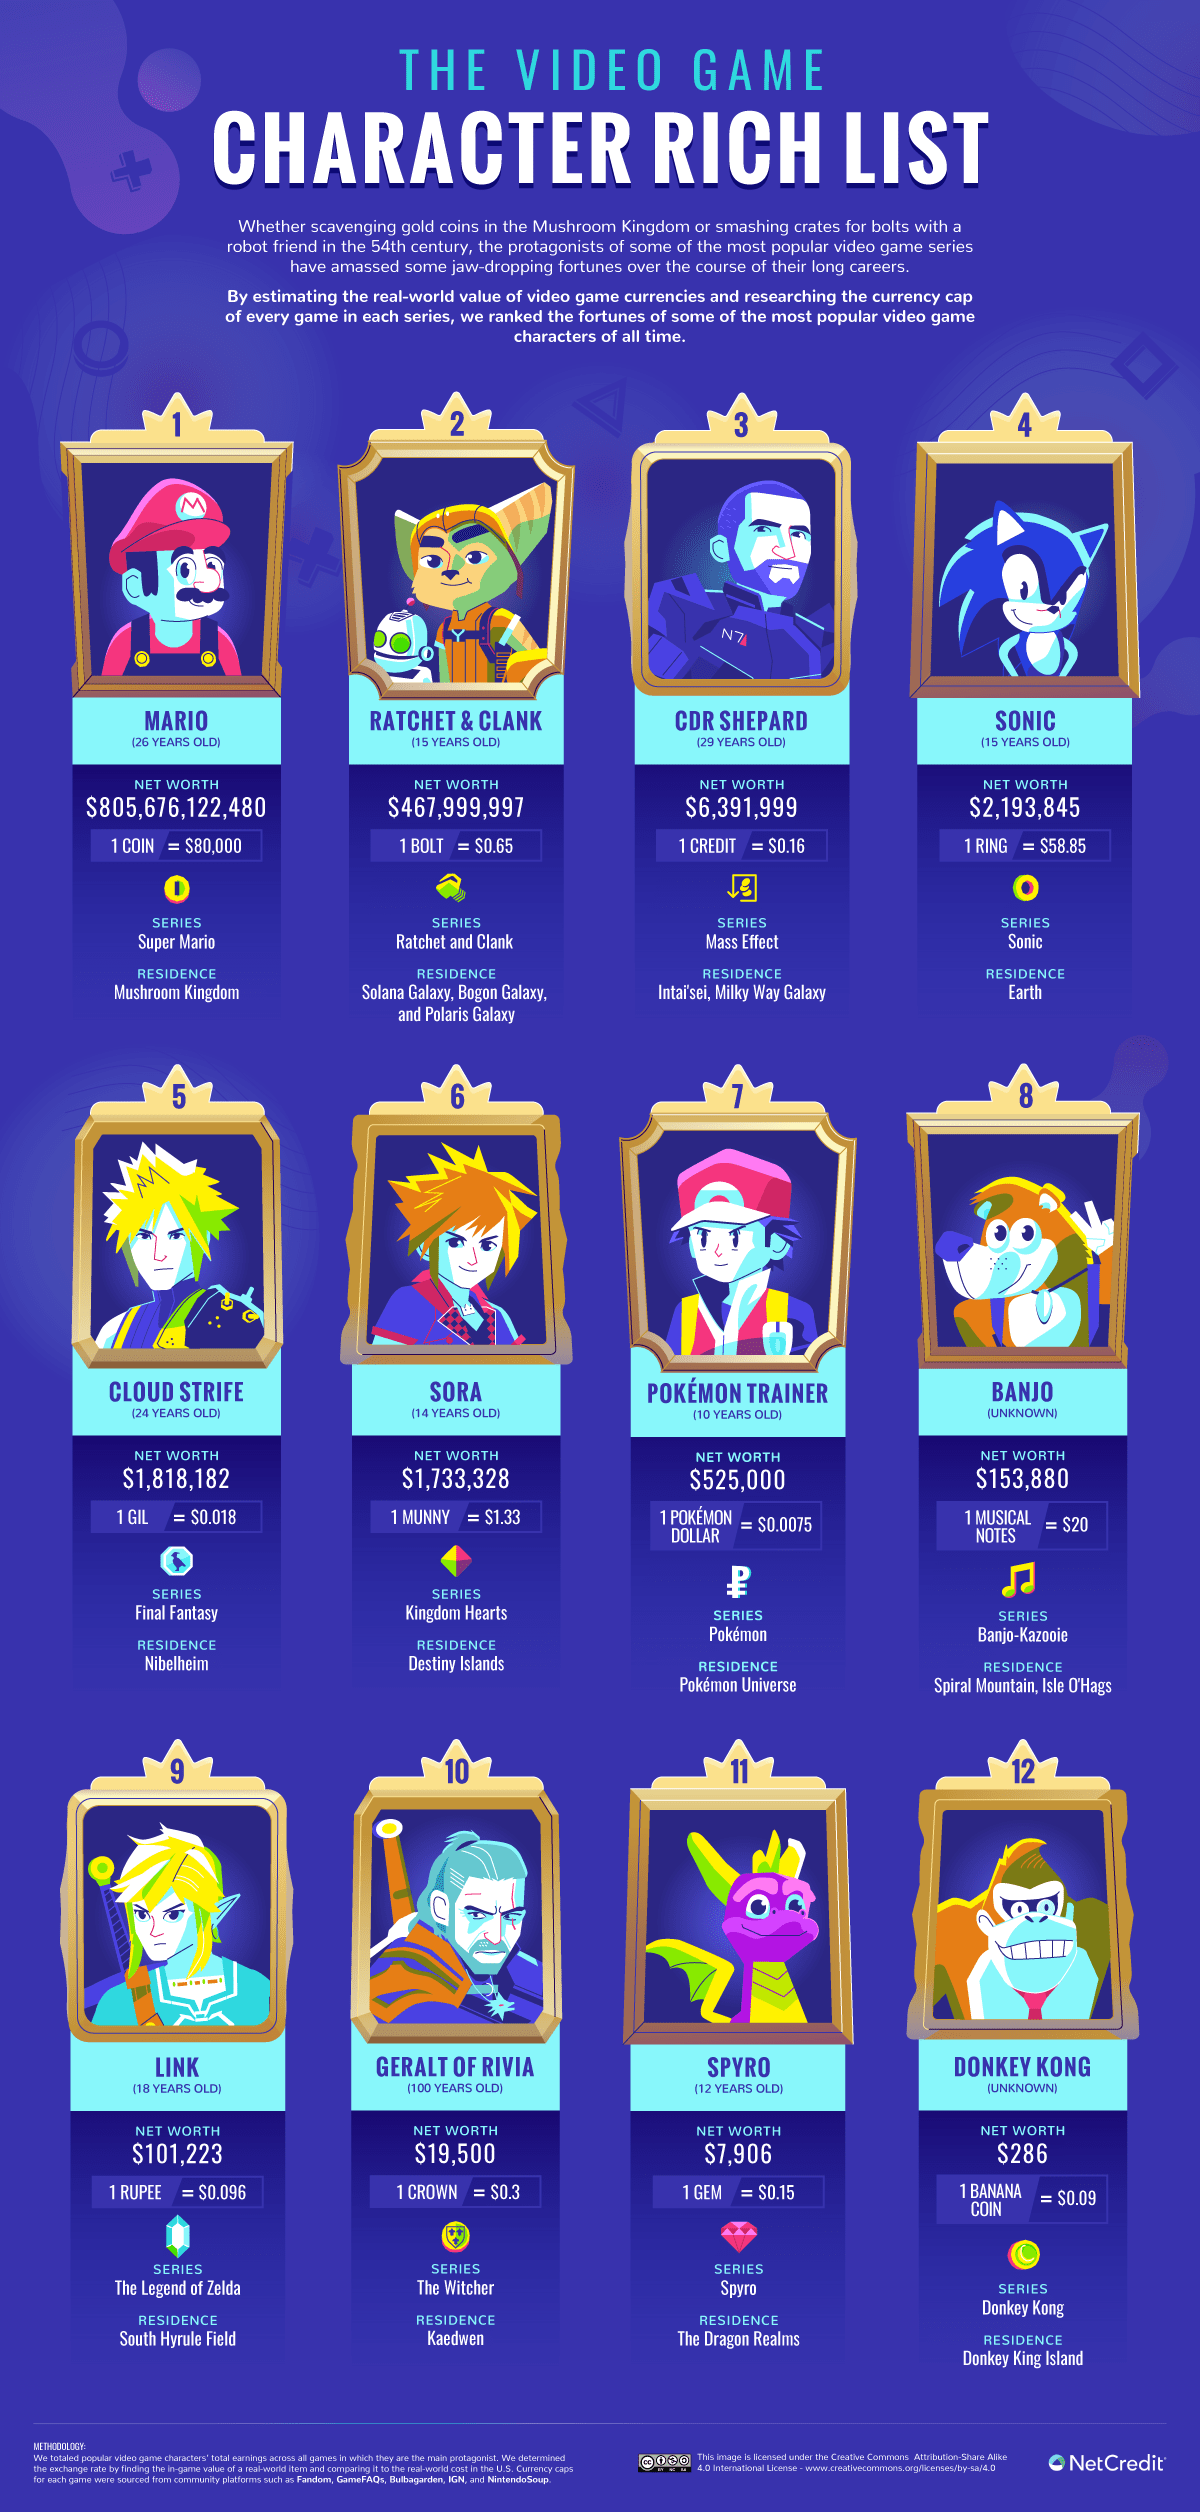 richest video game characters